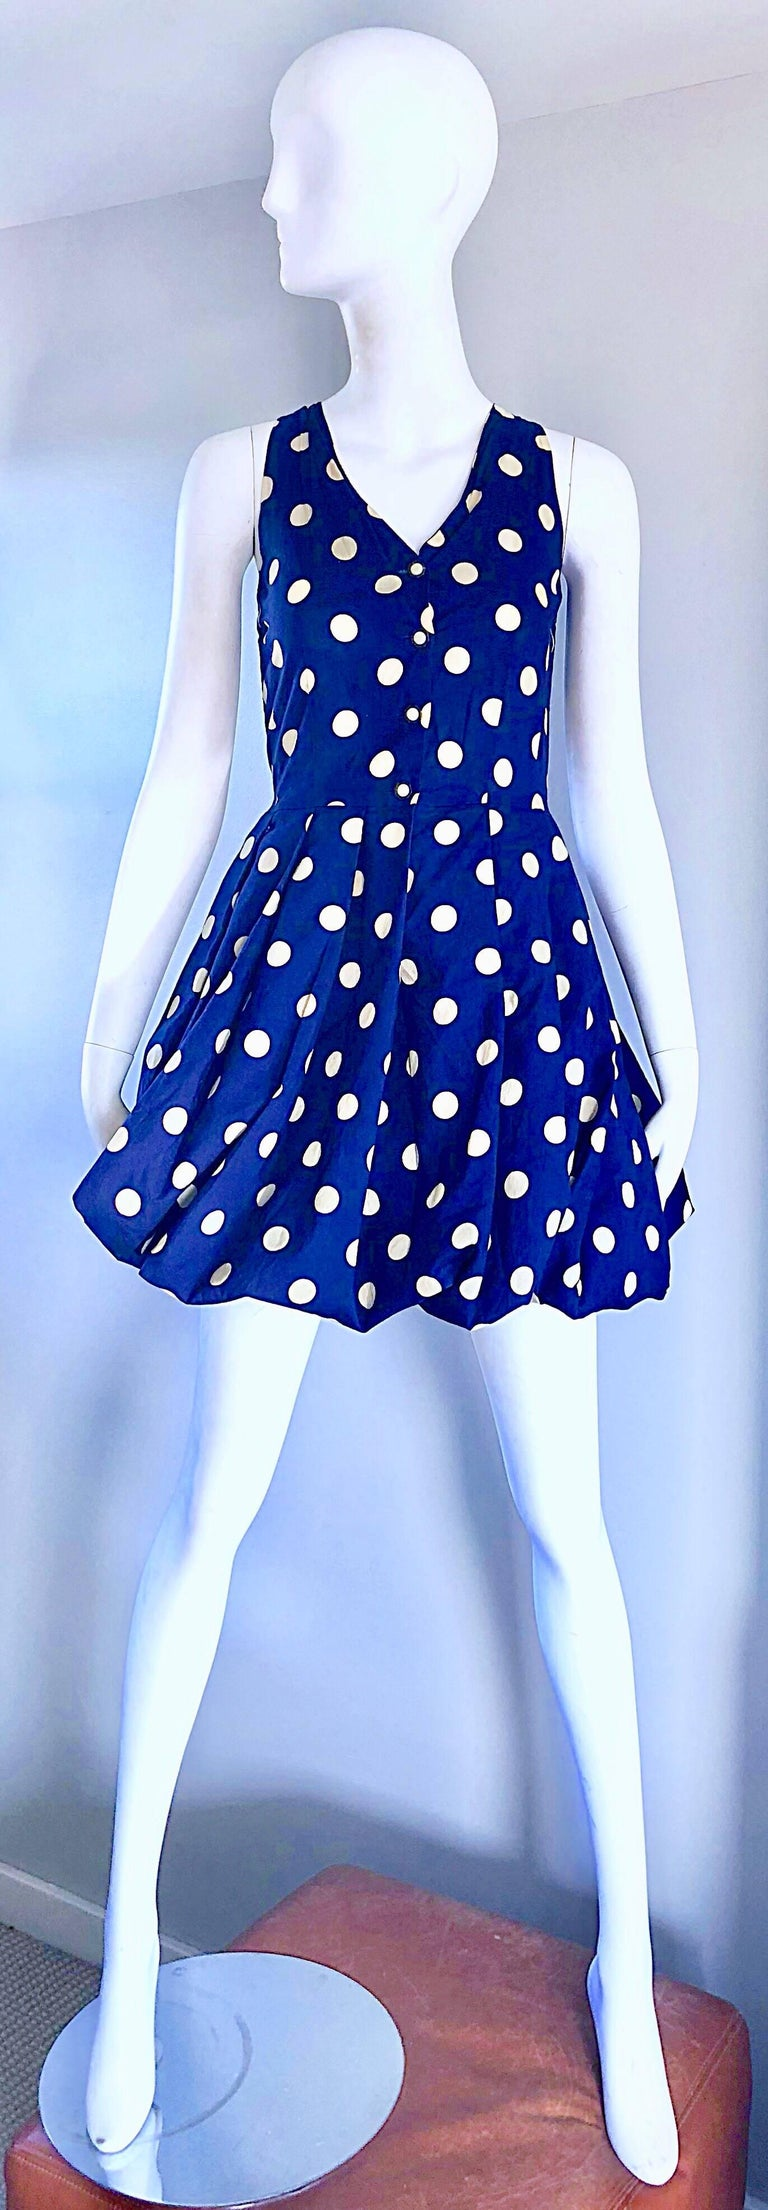 Chic 1990s SERGIO TEGON for SEVENTY navy blue and ivory white polka dot cotton sleeveless mini bubble dress! Features a fitted bodice that buttons up the front, with a full bubble skirt. Navy blue and ivory white polka dots throughout. Interior band